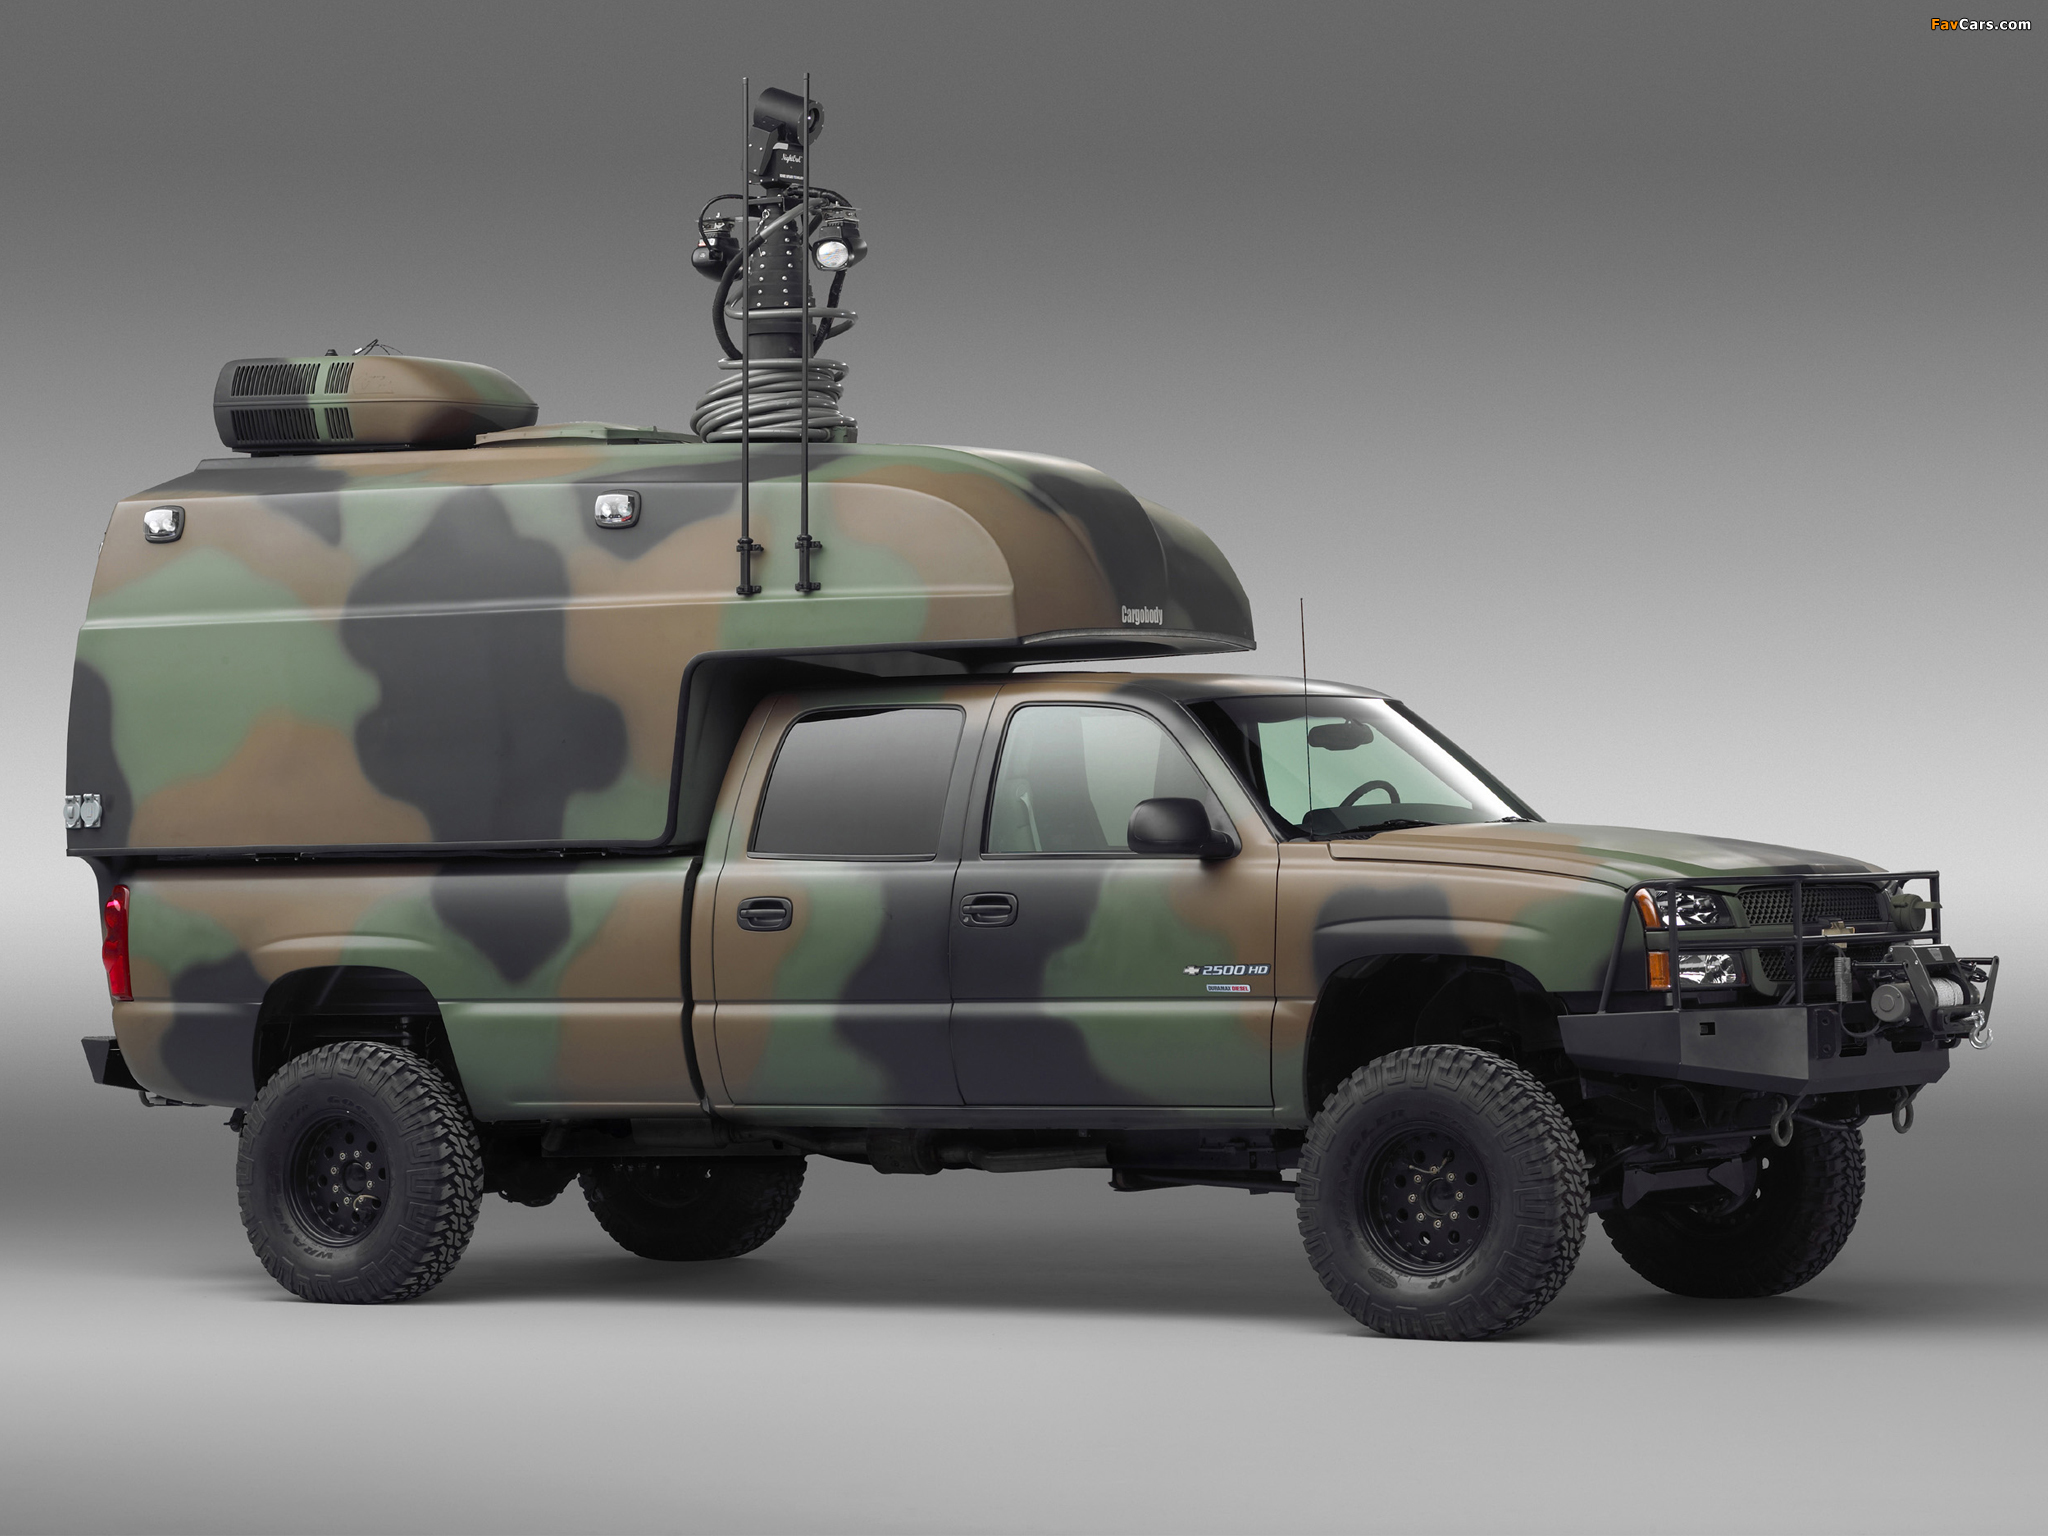 2018 Chevrolet Silverado Hydrogen Military Vehicle photo - 4